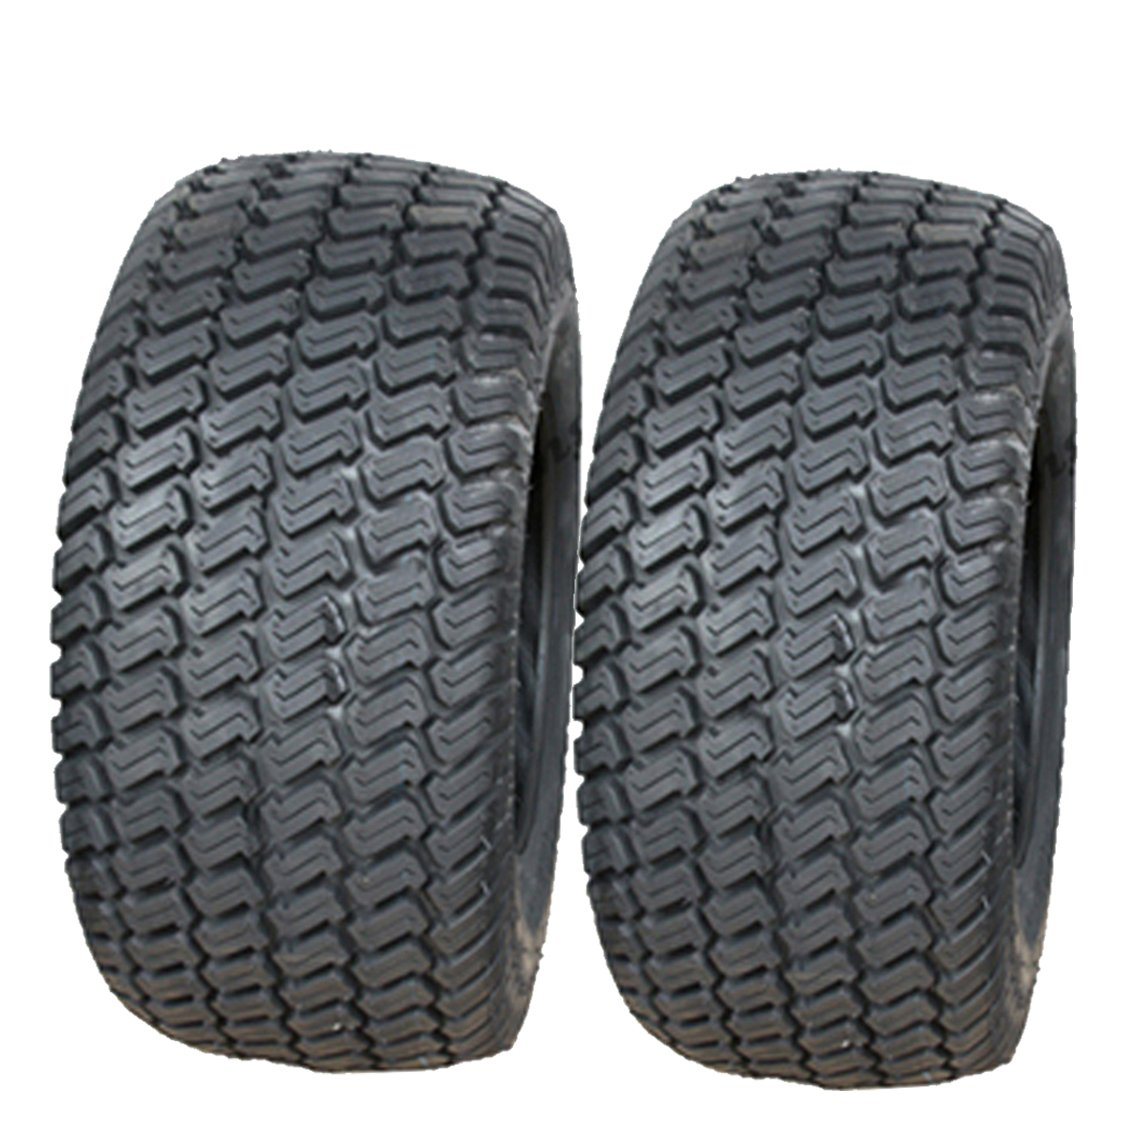 Parnells For sale are 2-11x4.00-4 4ply turf grass lawn mower tyres Wanda